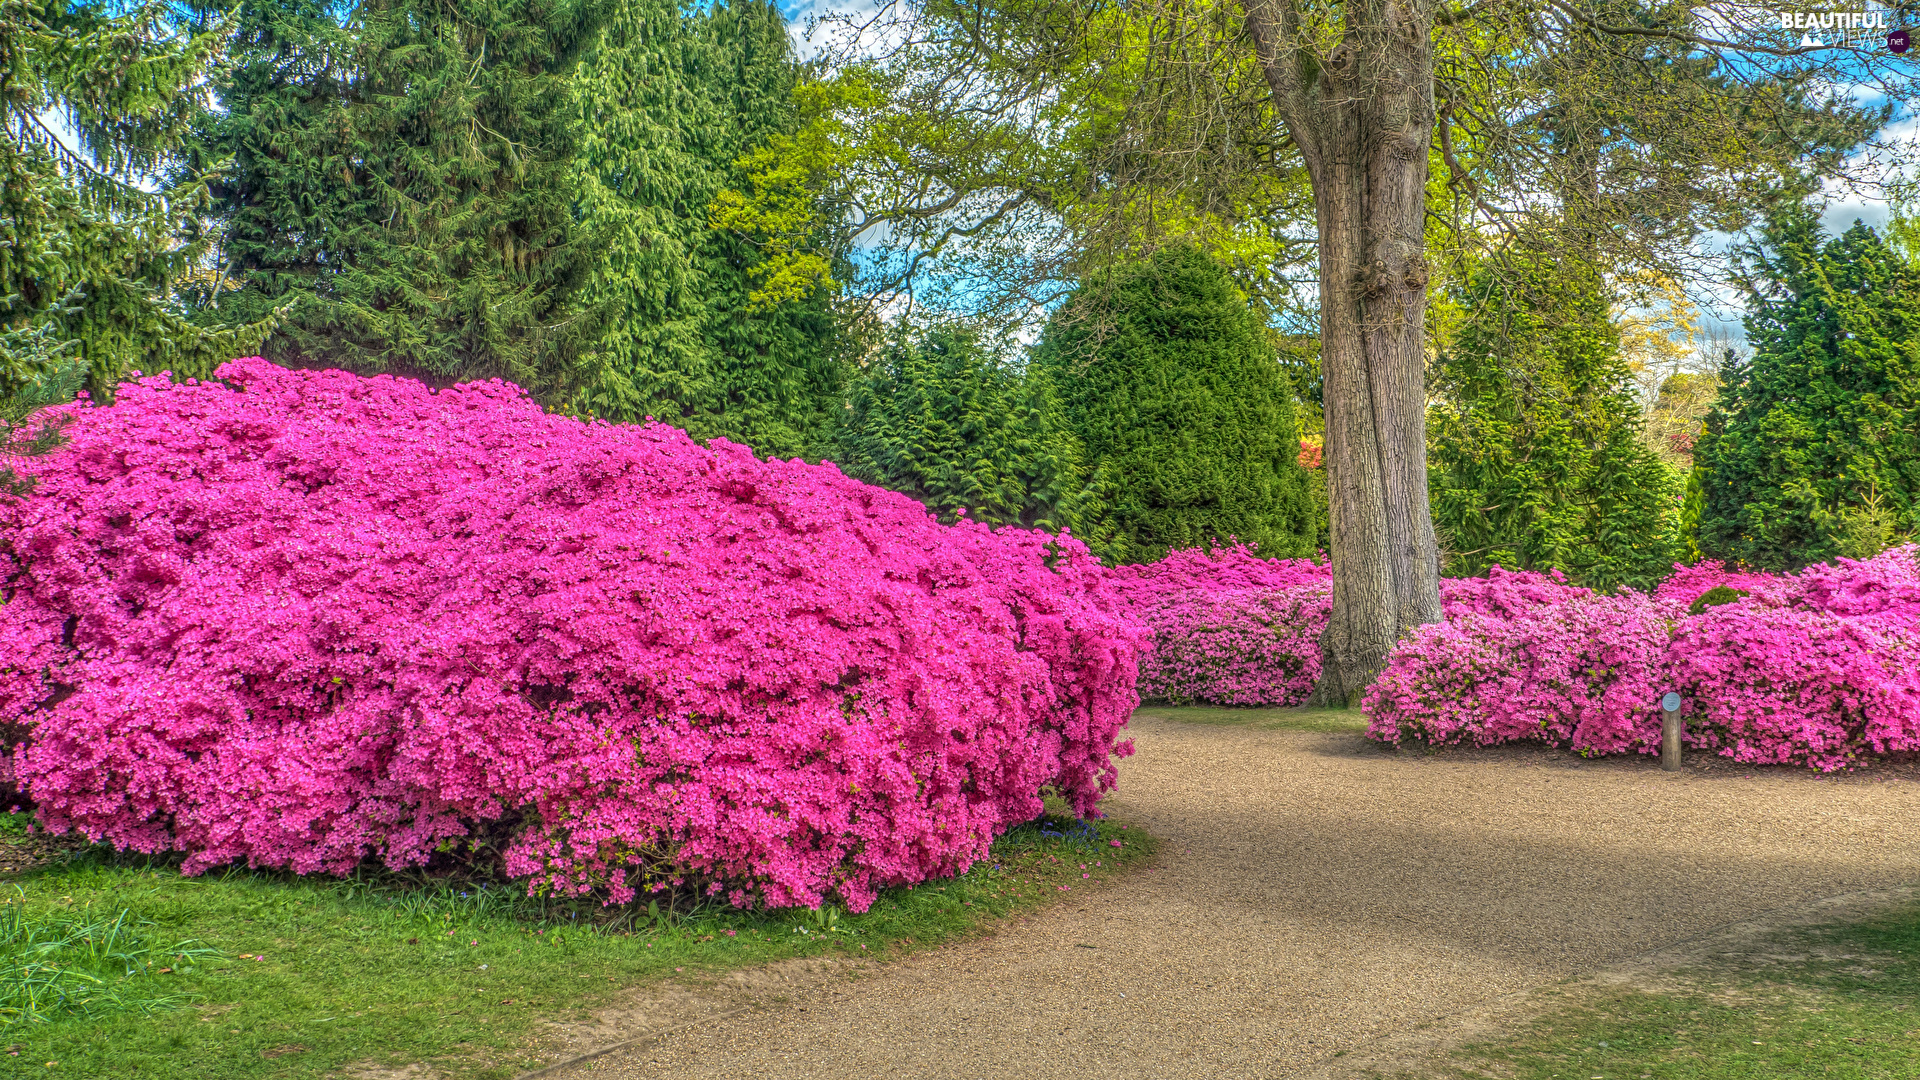 trees, Park, Bush, lane, viewes, Rhododendrons